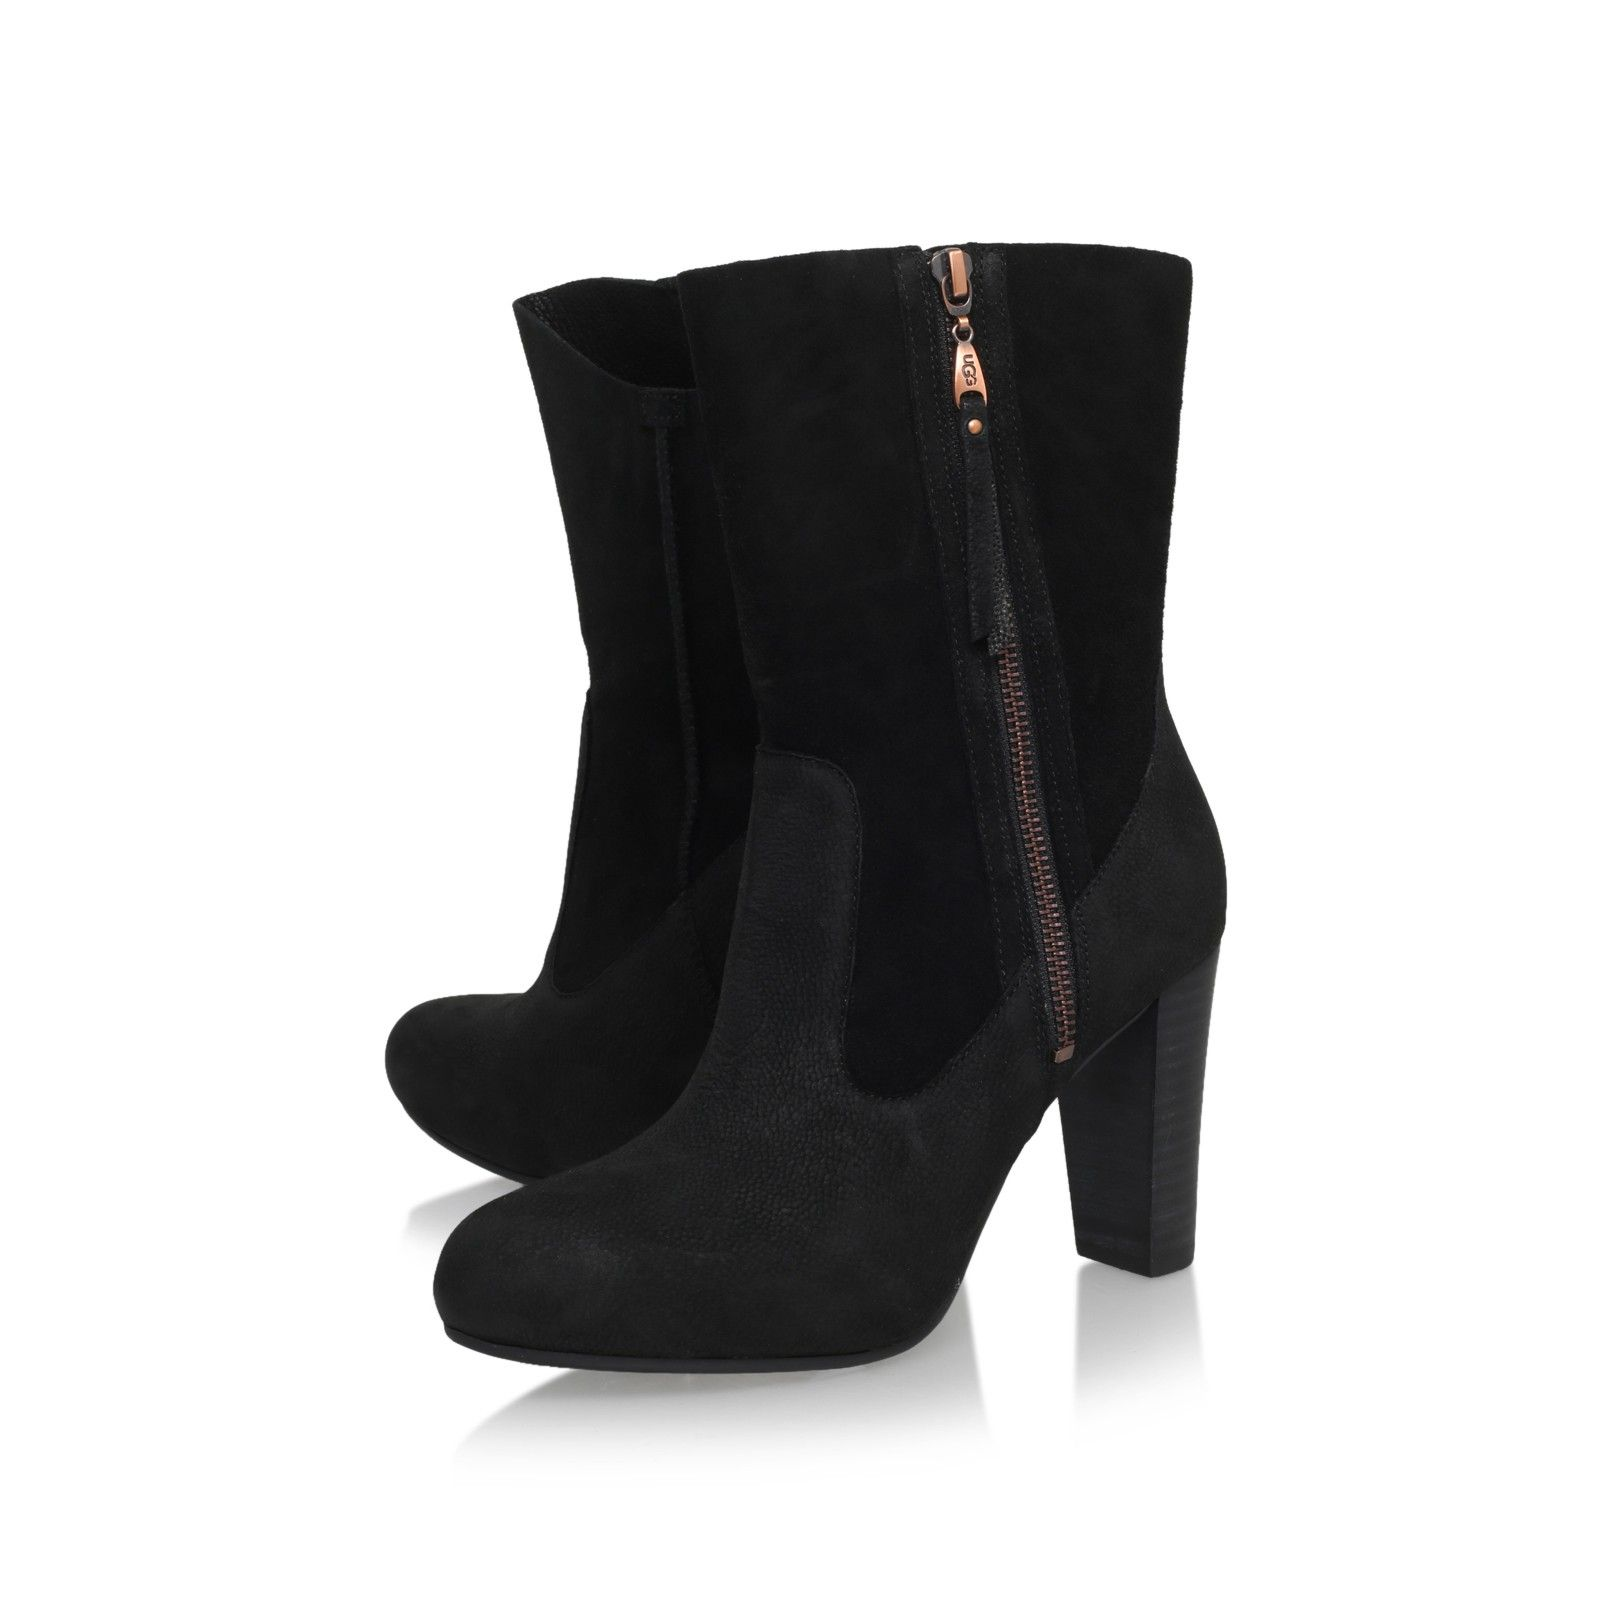 athena black mid heel ankle boots from UGG Australia